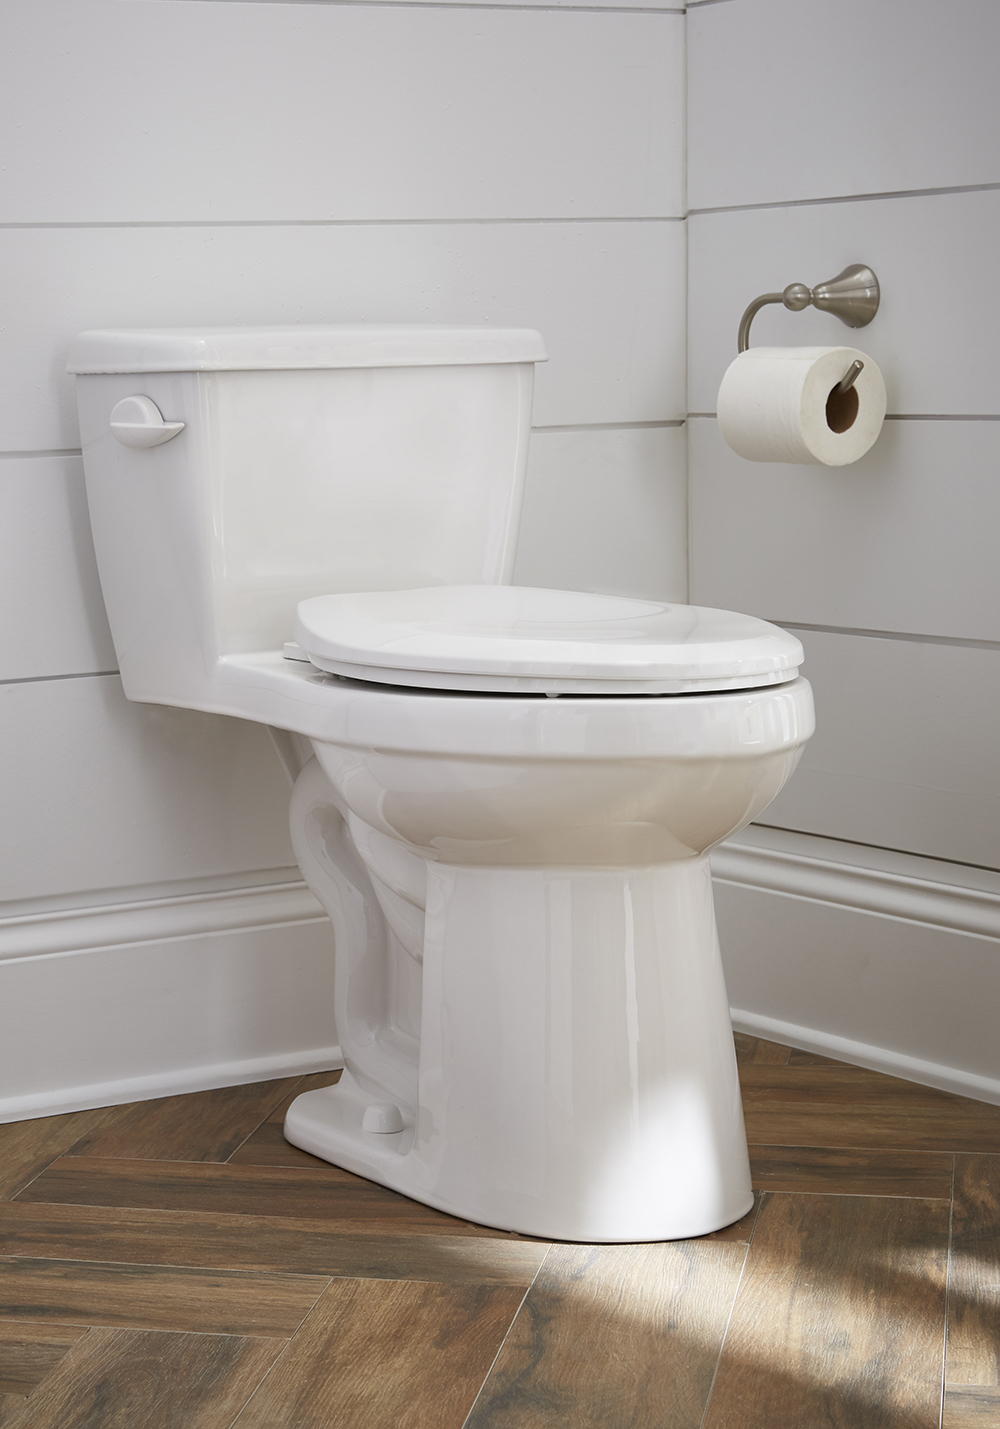 How To Repair Dual Flush Toilet